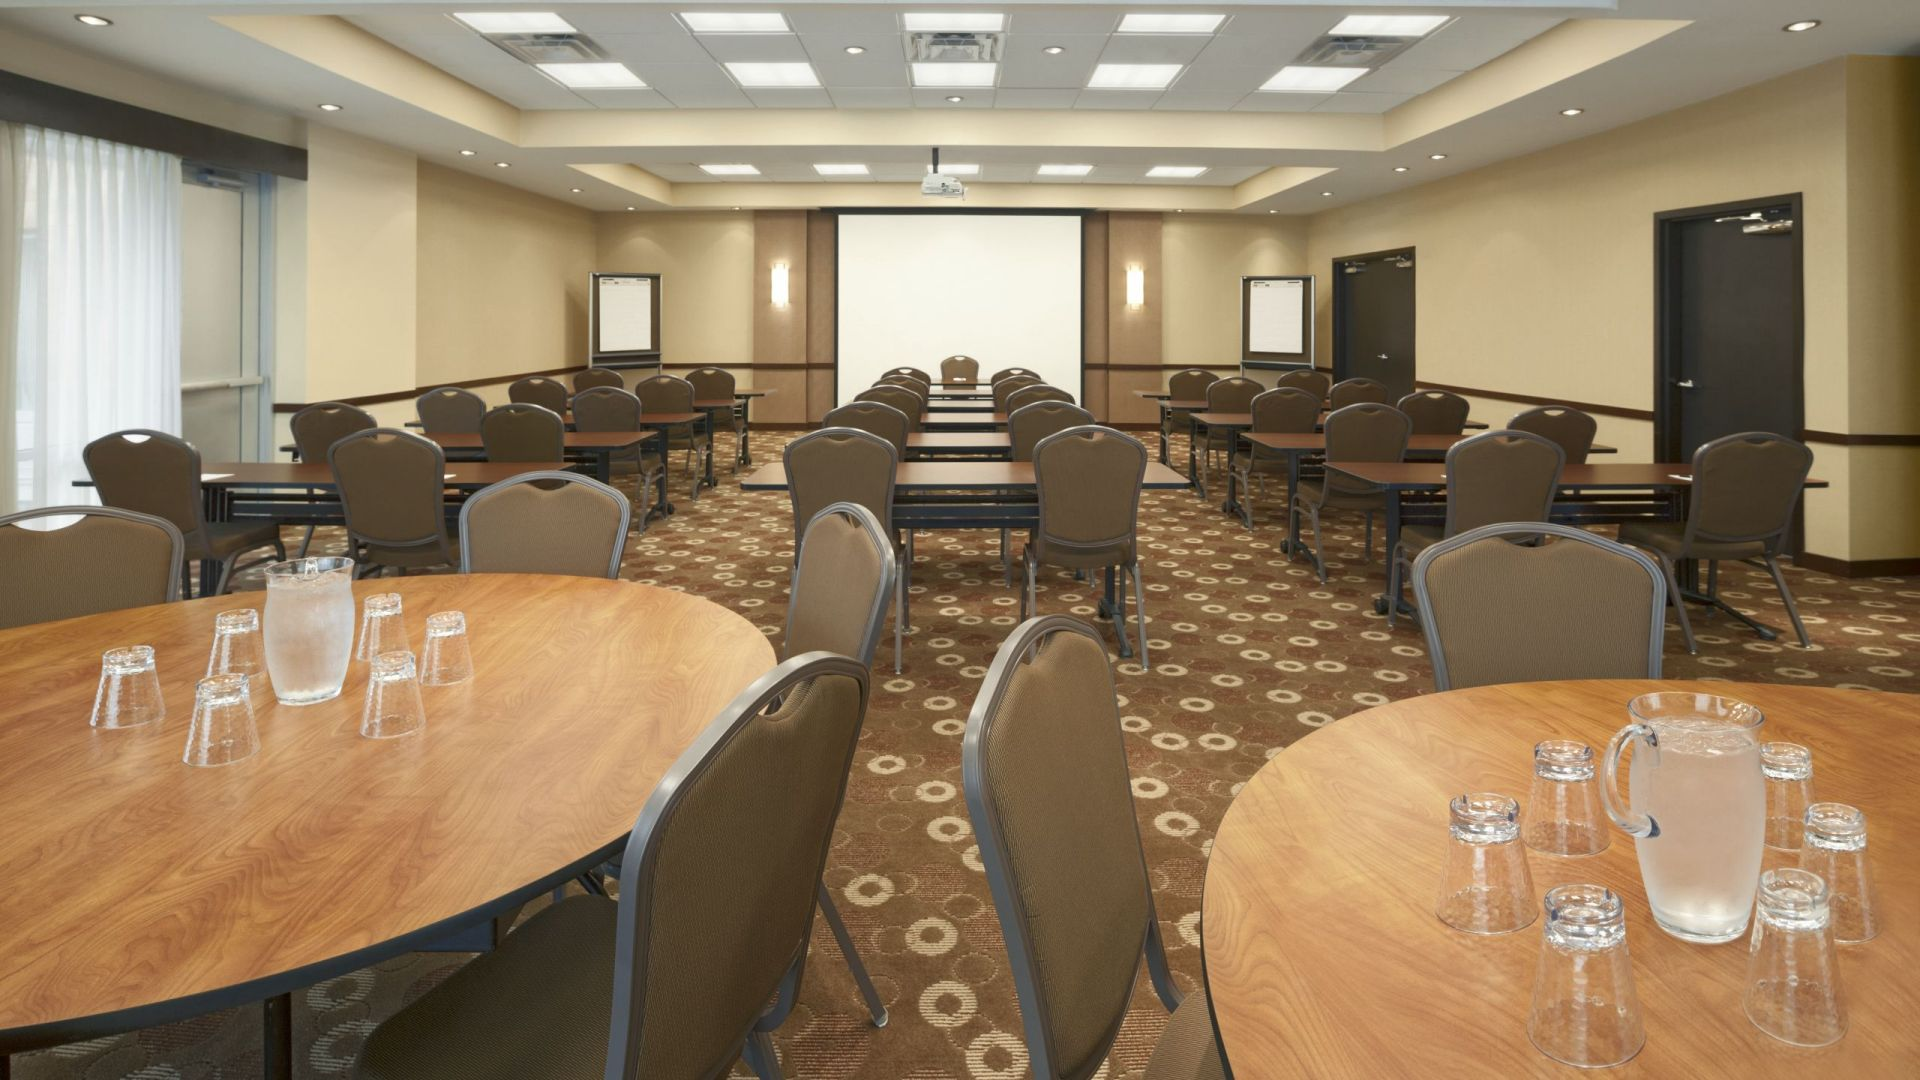 hyatt meeting room